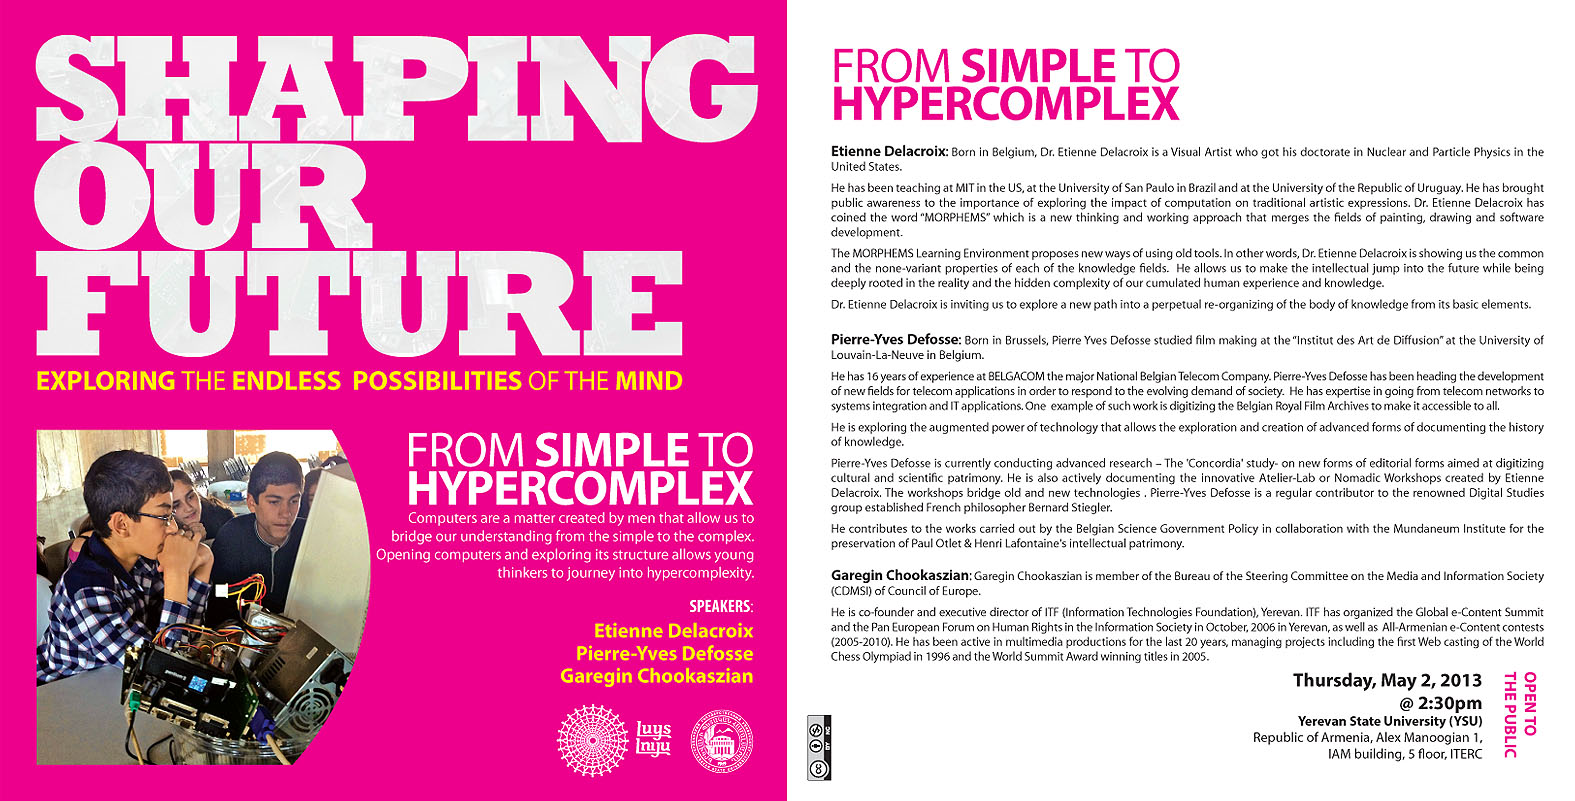 From simple to hypercomplex